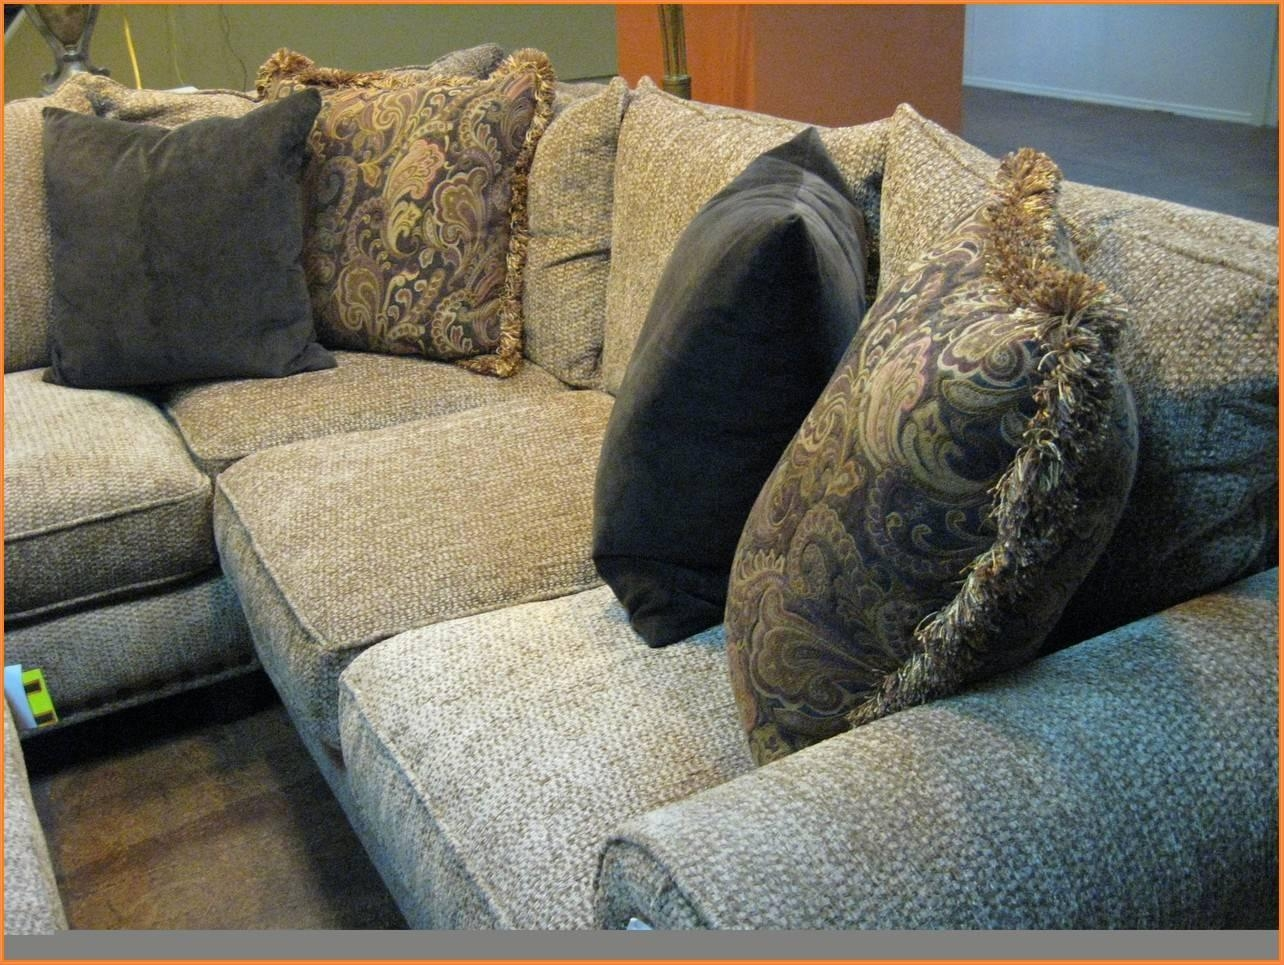 Down Filled Sectional Sofa | Berg Home Design Intended For Down Filled Sofas And Sectionals (View 5 of 15)